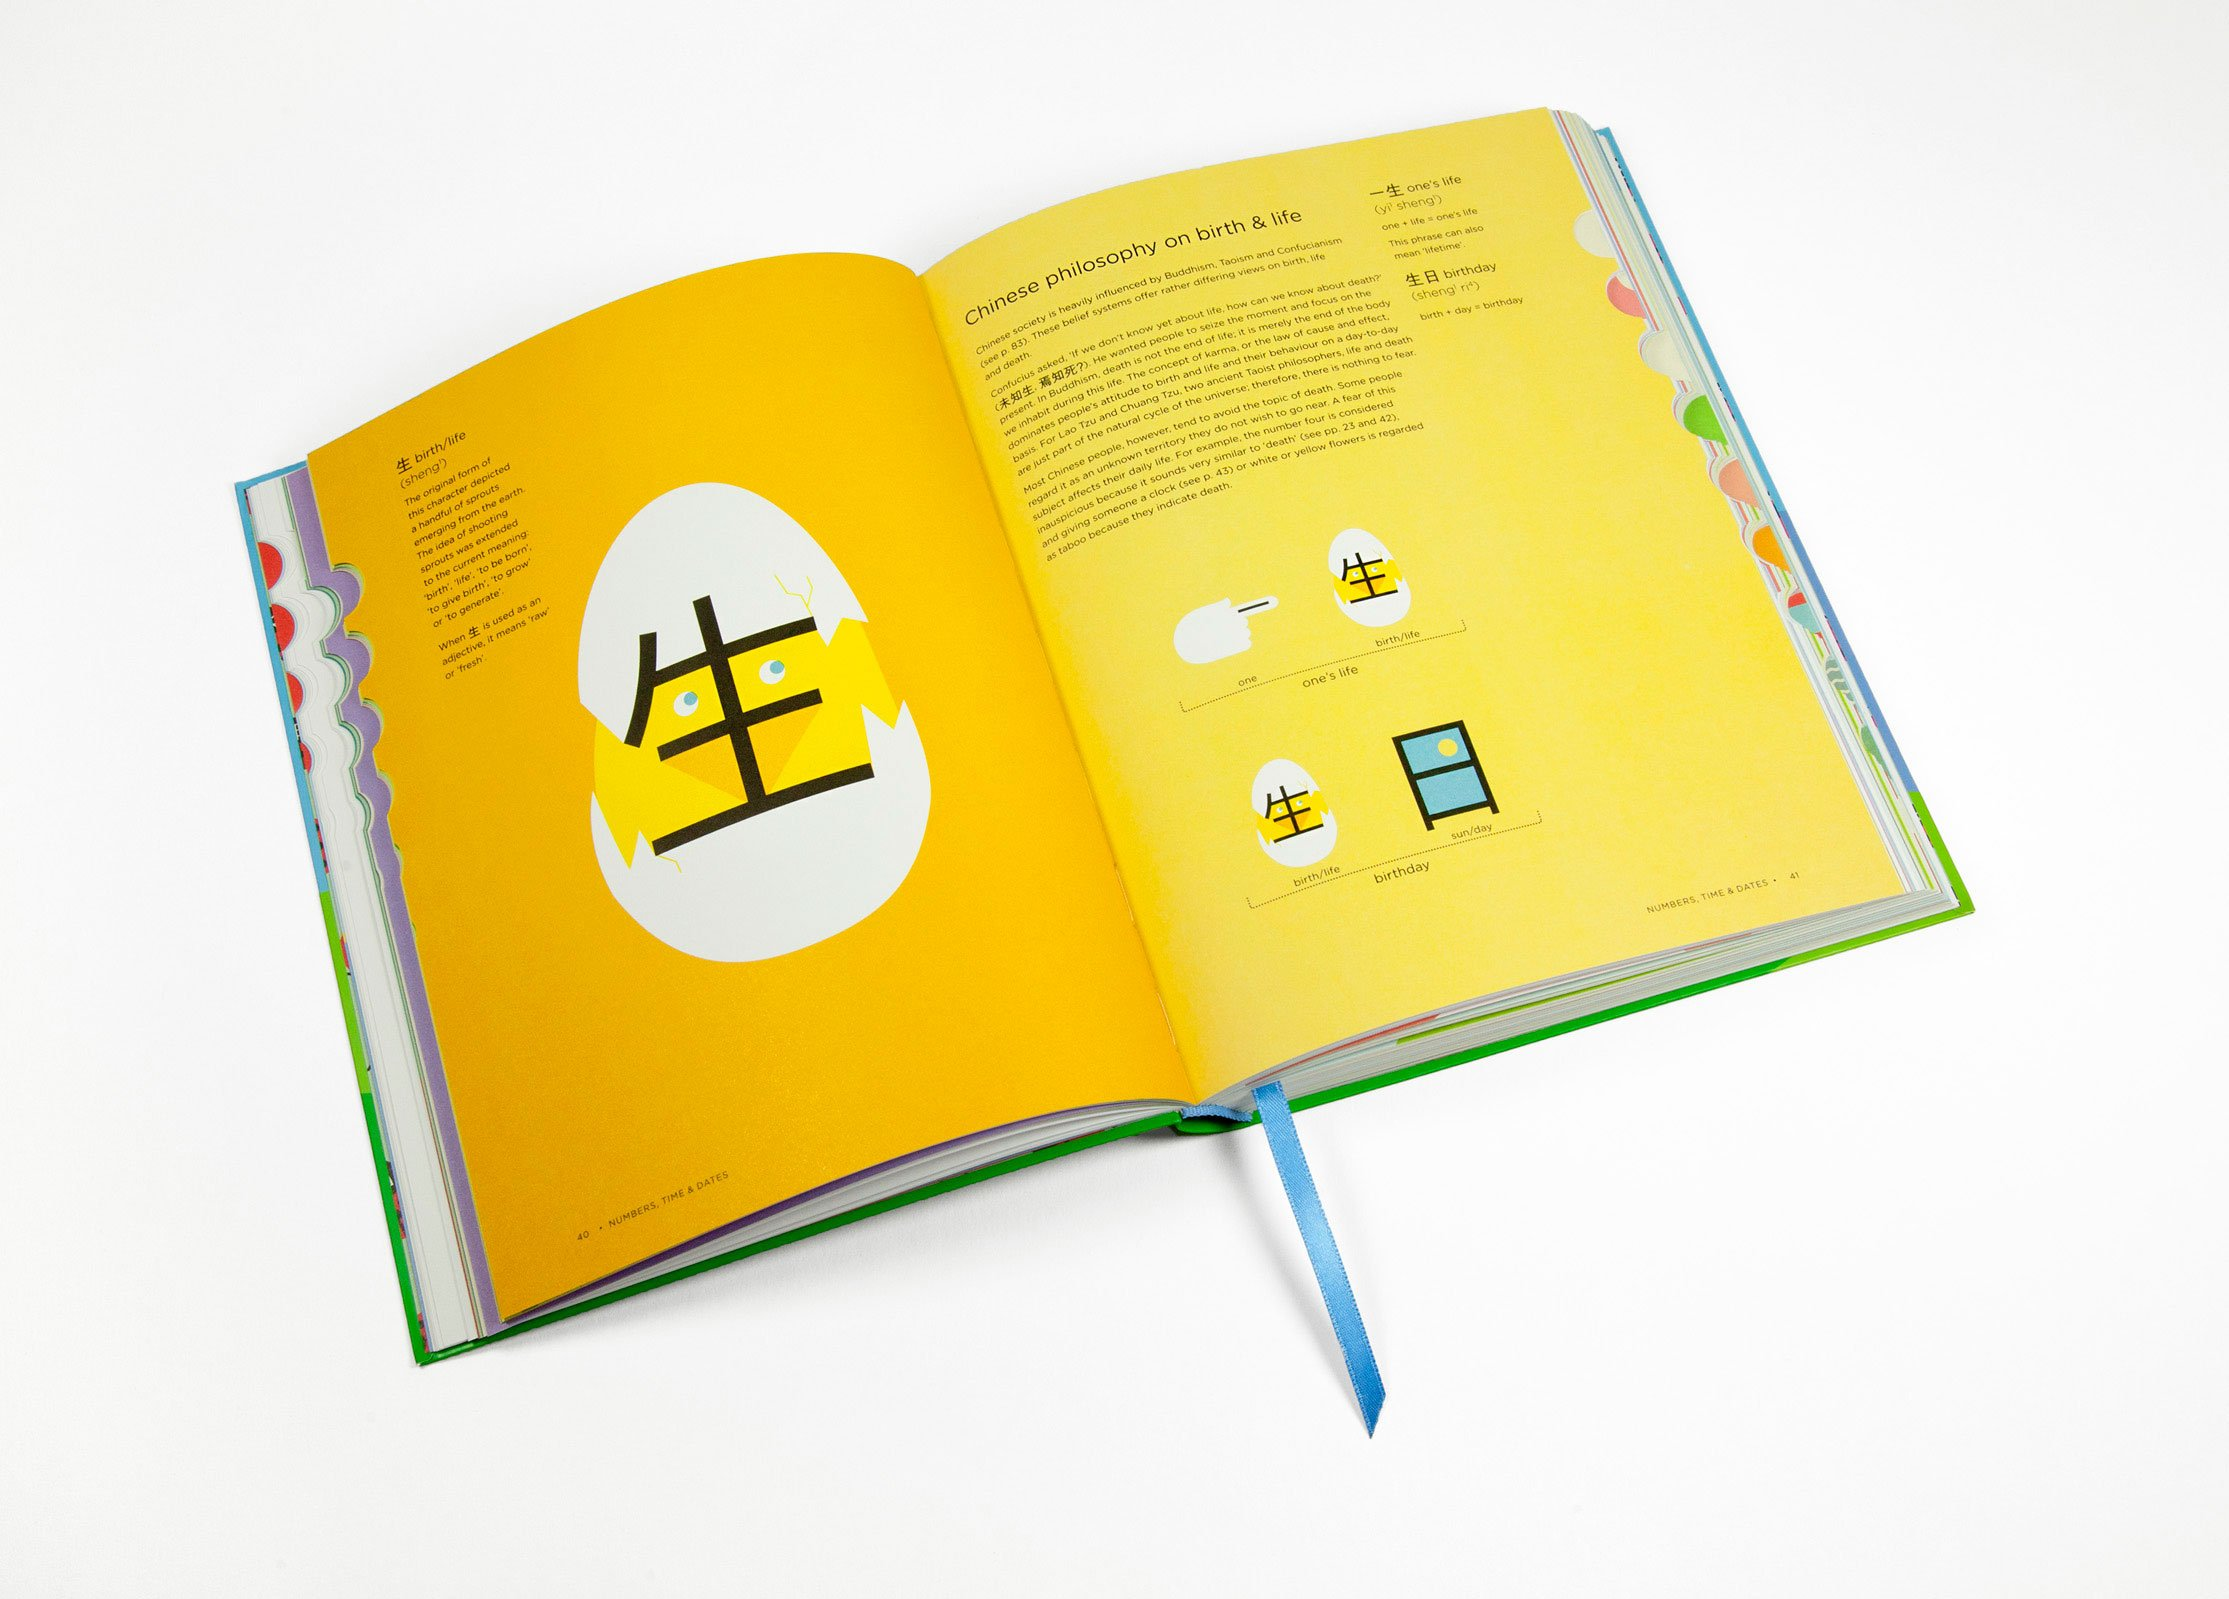 Chineasy Everyday The World Of Chineasy Characters Noma Bar